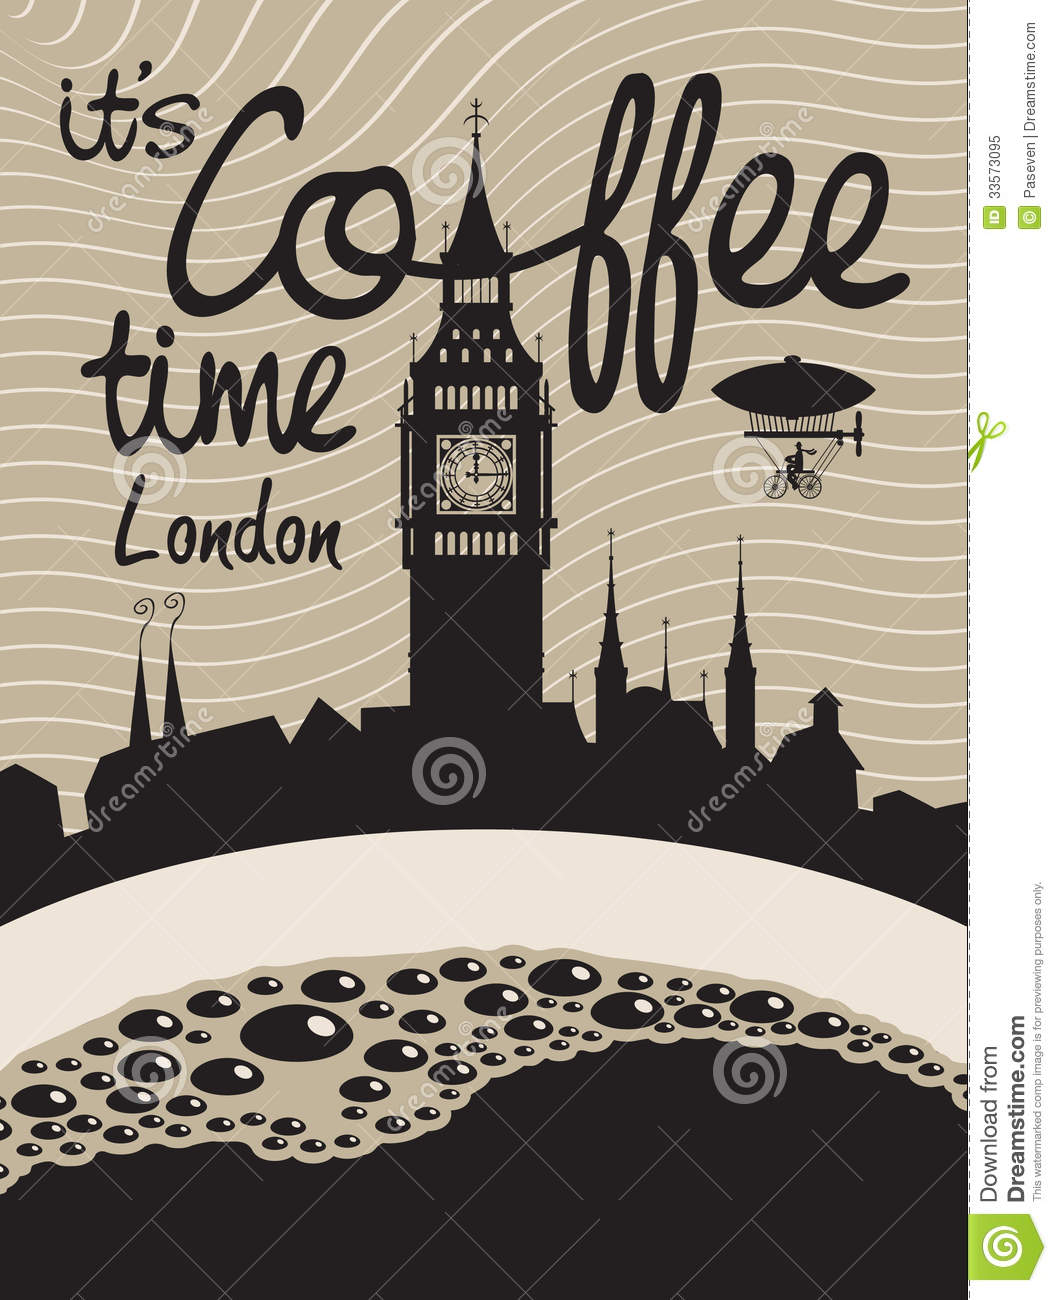 heres free coffee date london